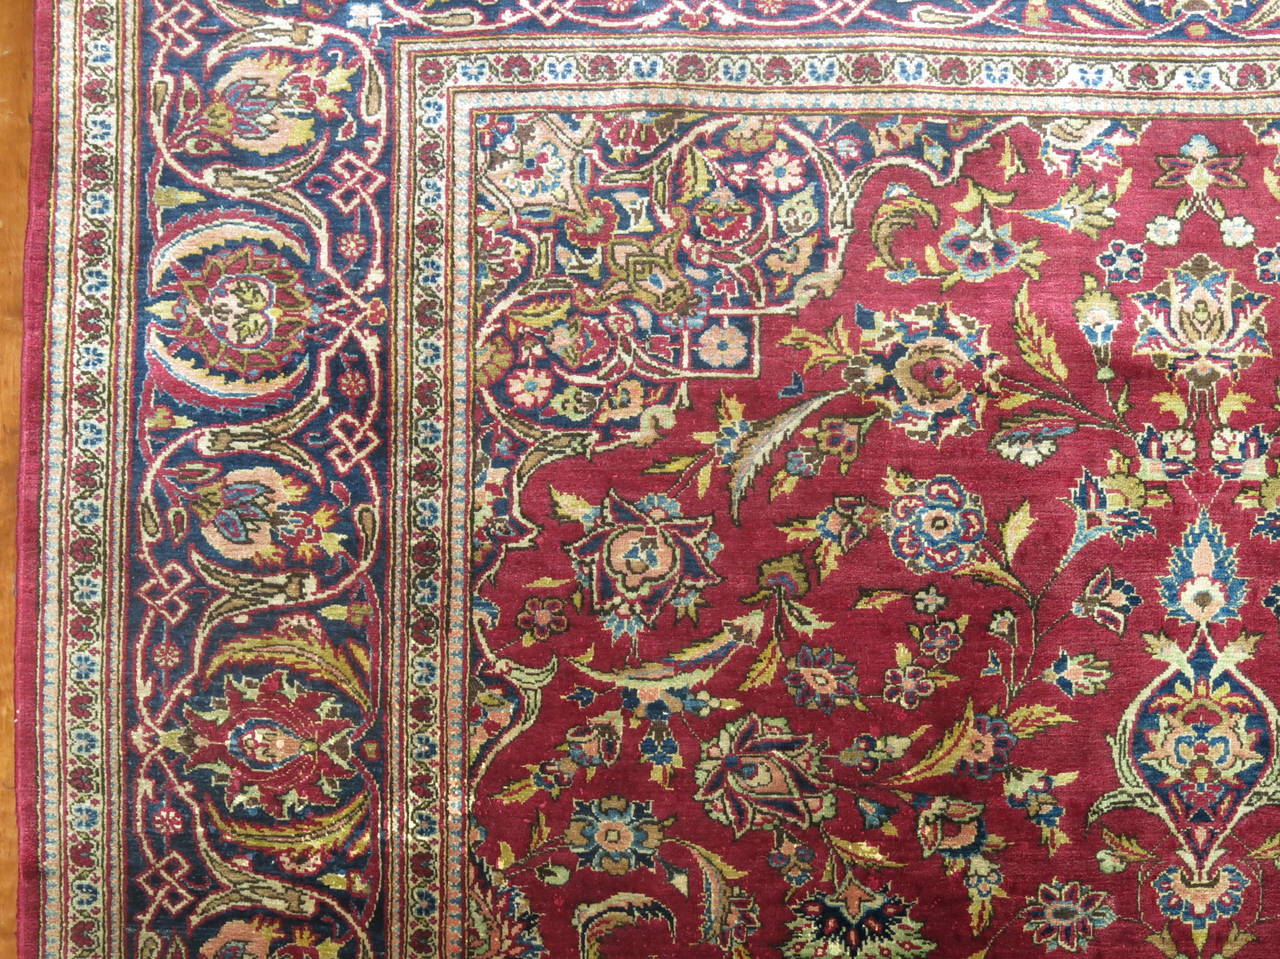 A Classic antique Persian silk on wool rug woven in city of Kashan. KPSI 400.